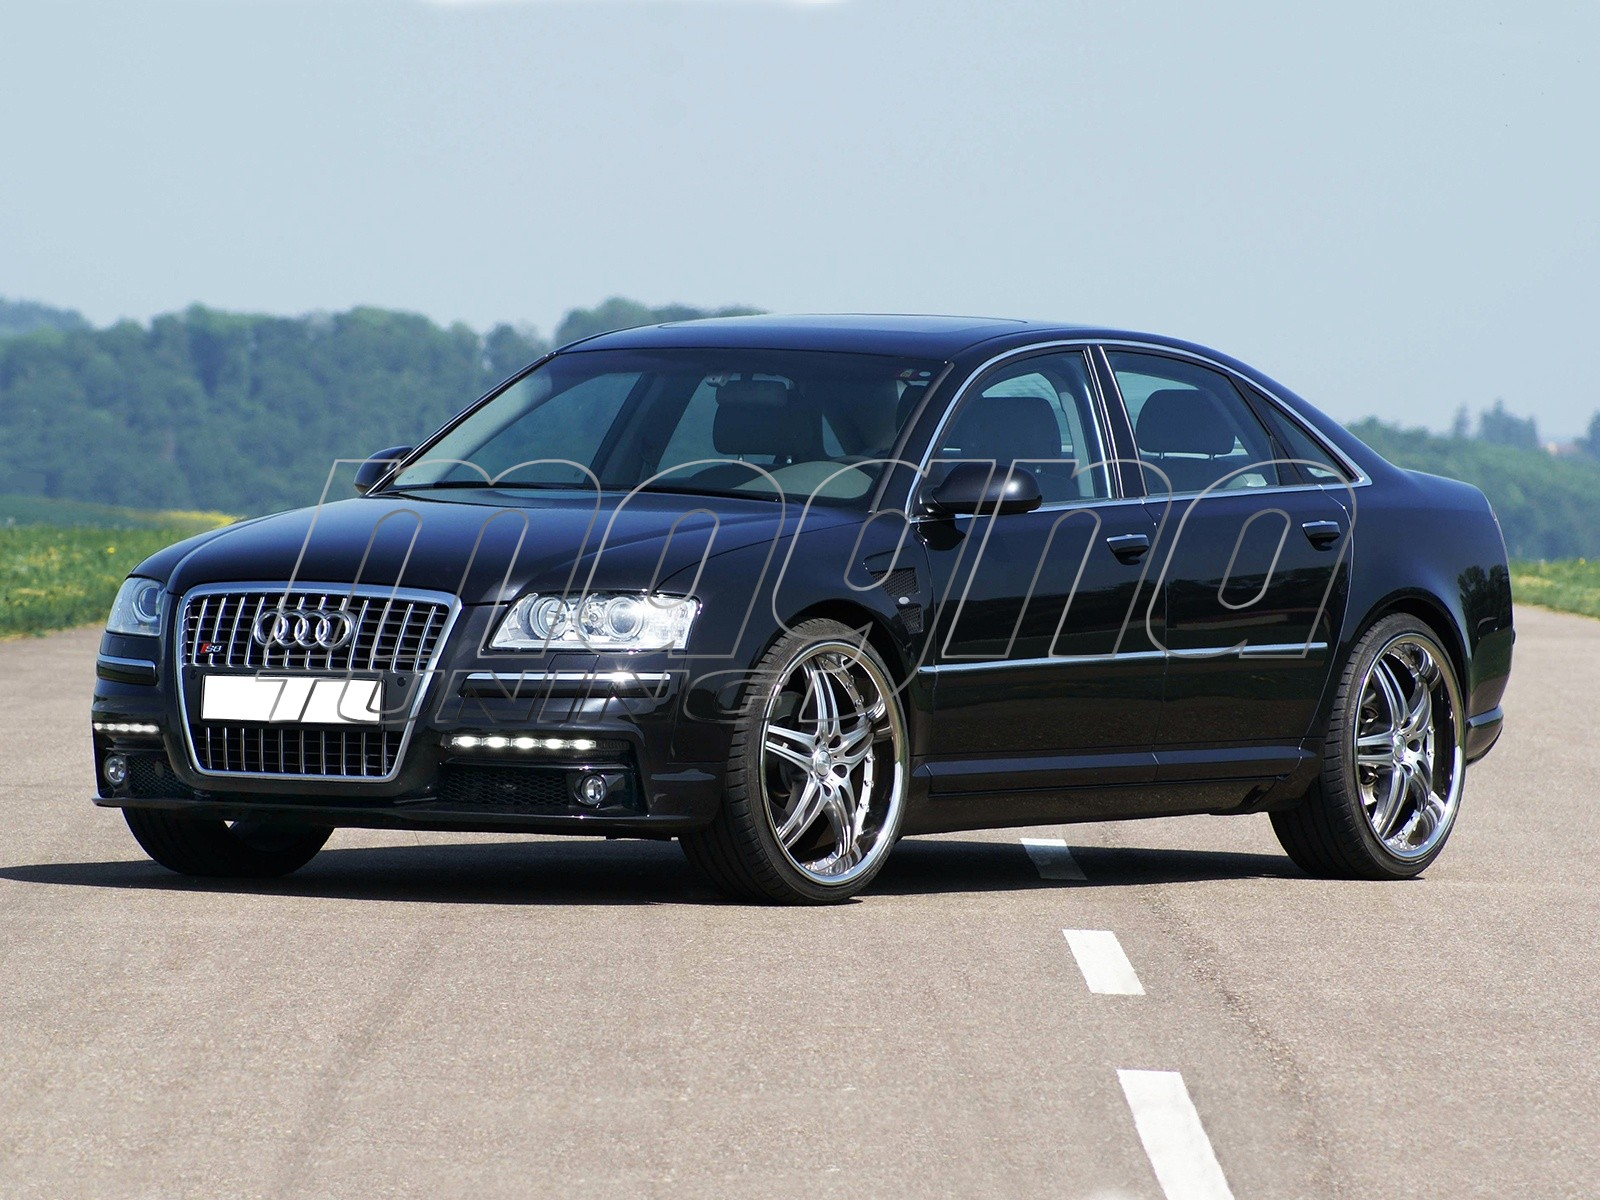 audi a8 4e facelift exclusive body kit. Black Bedroom Furniture Sets. Home Design Ideas